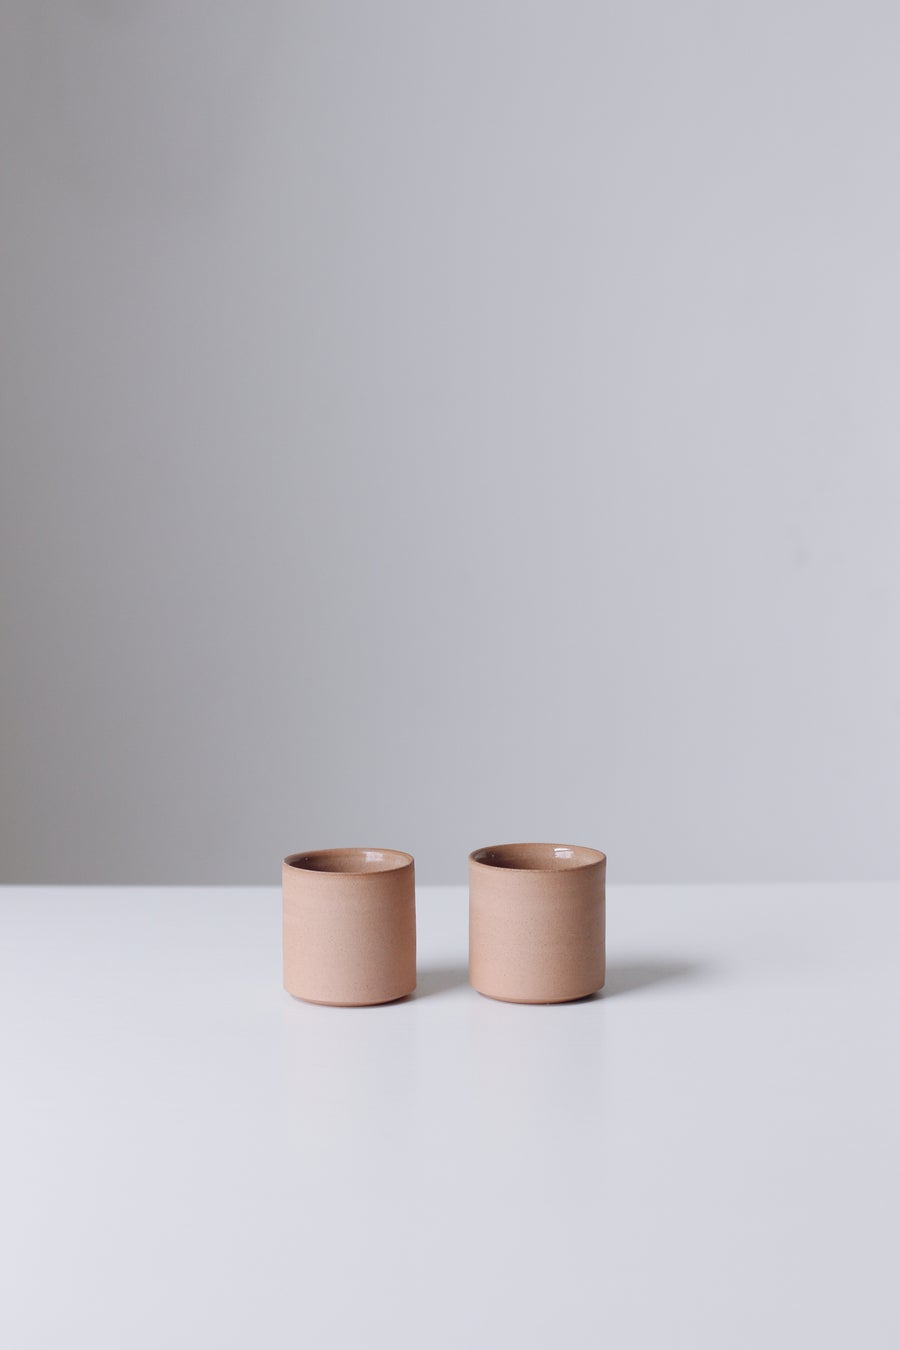 Image of Pair of Dune Espresso Cups